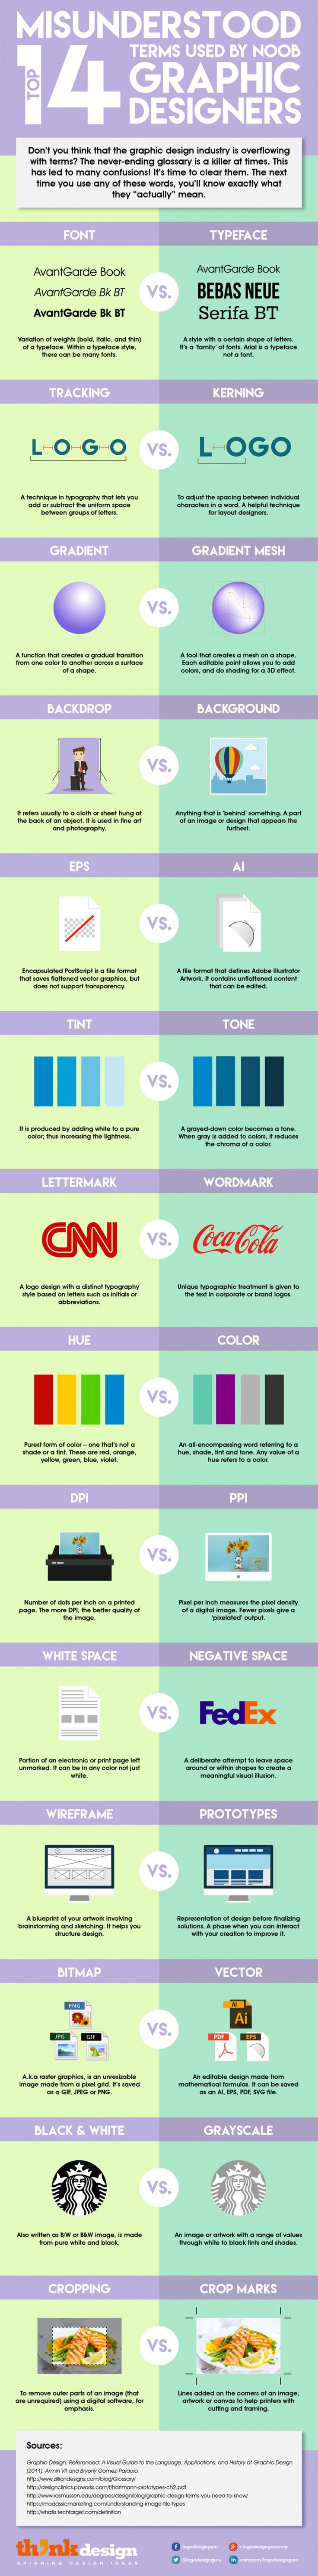 14 Design Terms That Too Many Designers Get Wrong - UltraLinx